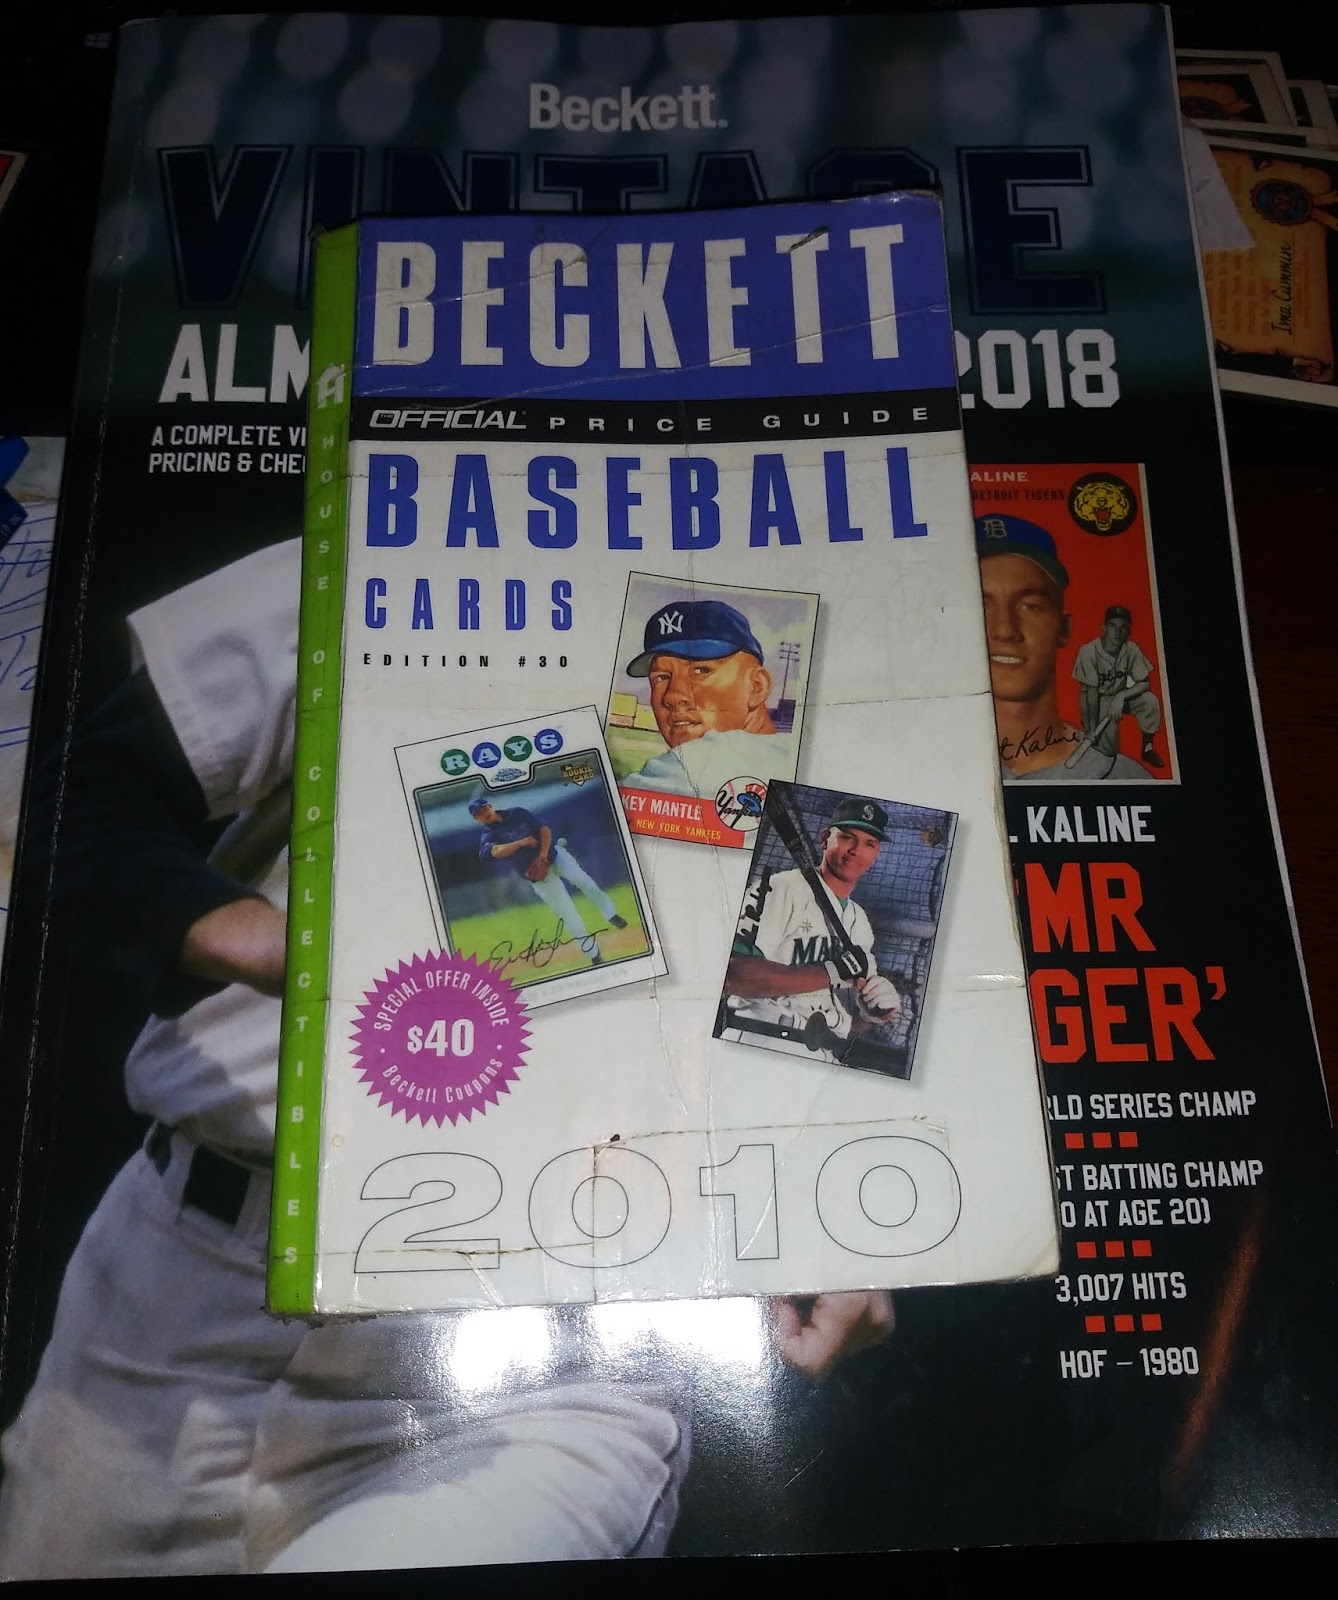 20th-Century Topps Baseball: Has Beckett Lost its Grasp of